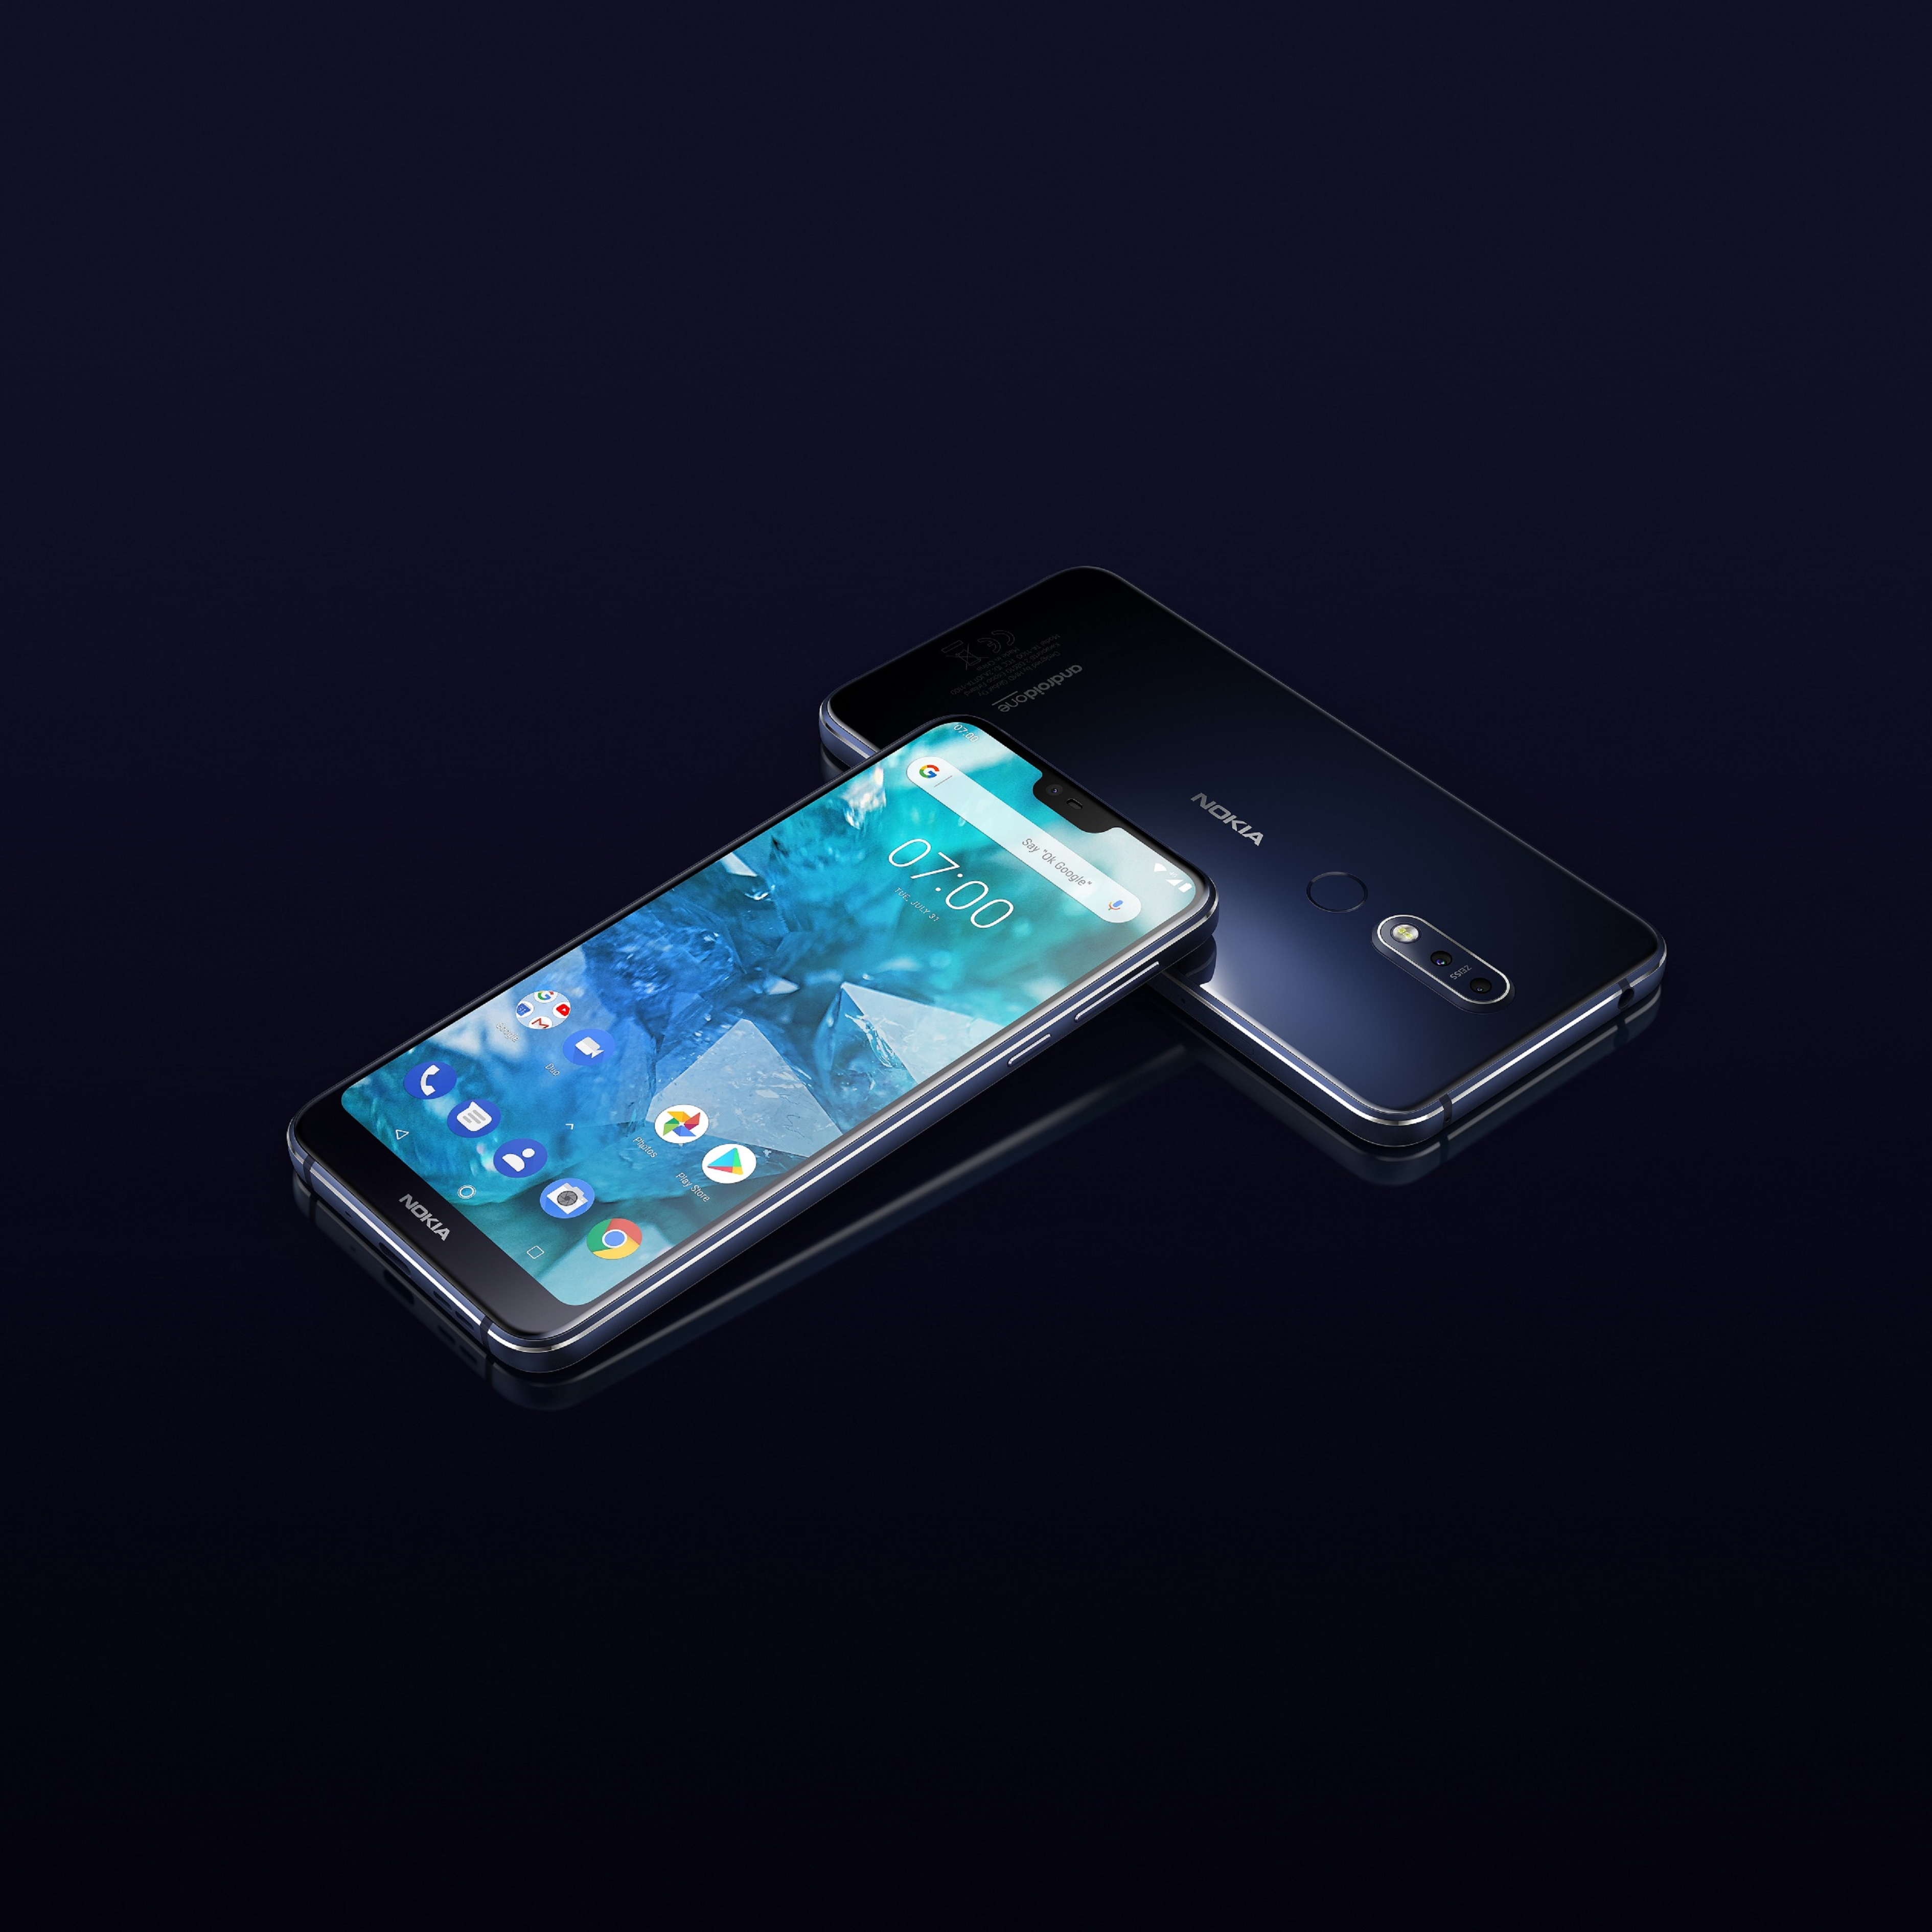 Nokia 7.1 launched with HDR10 display